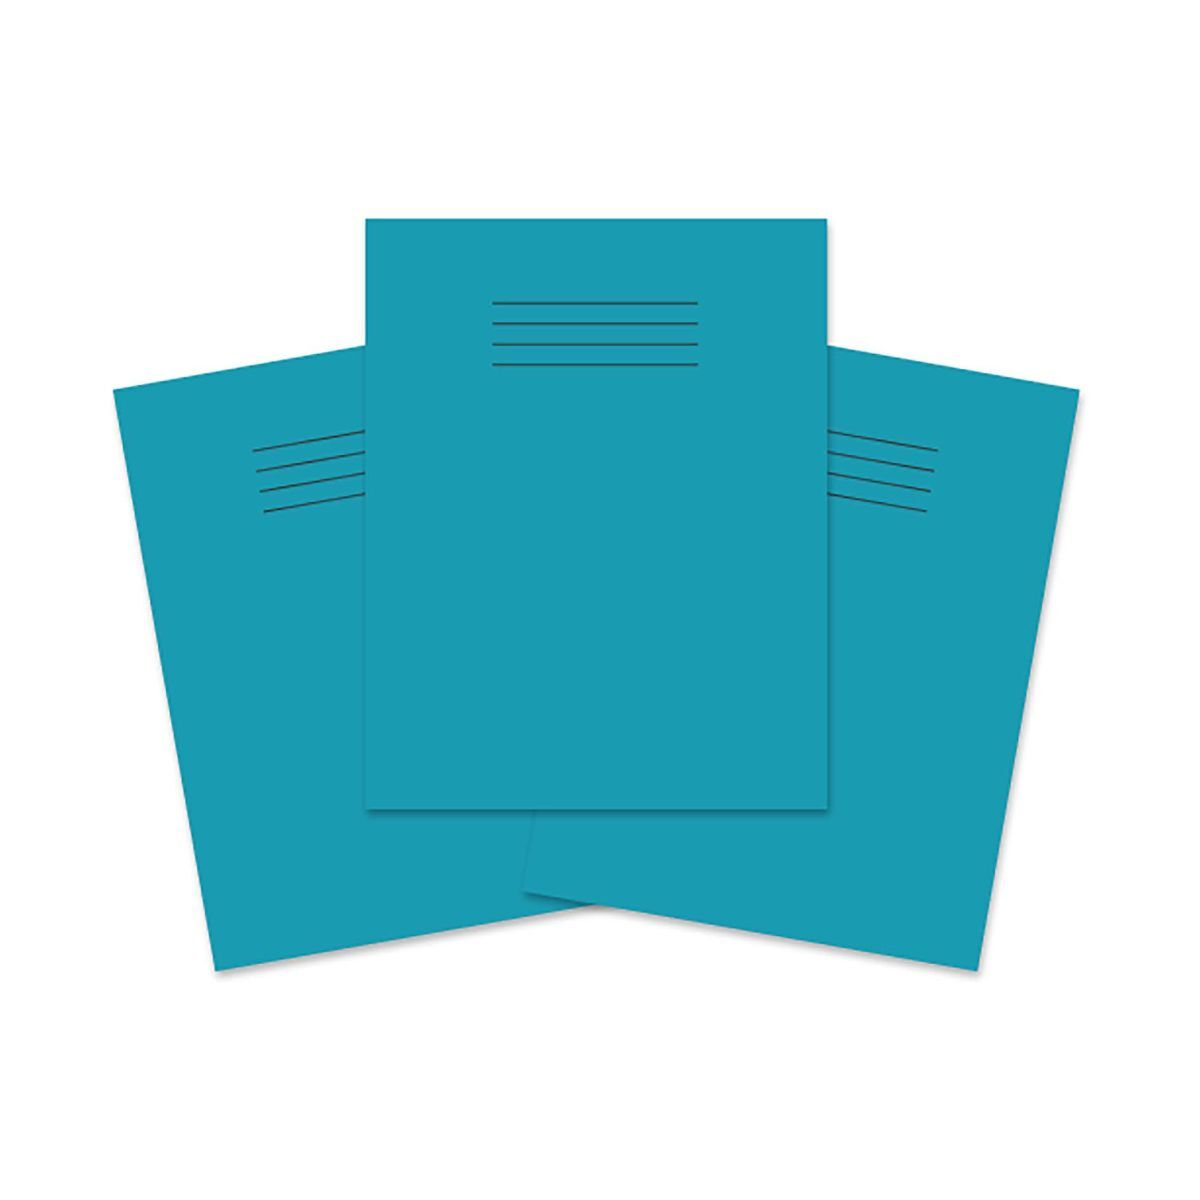 Exercise Book 9 inch x 7 Inch 80 Pages 8mm Ruled and Margin Pack of 100 Light Blue